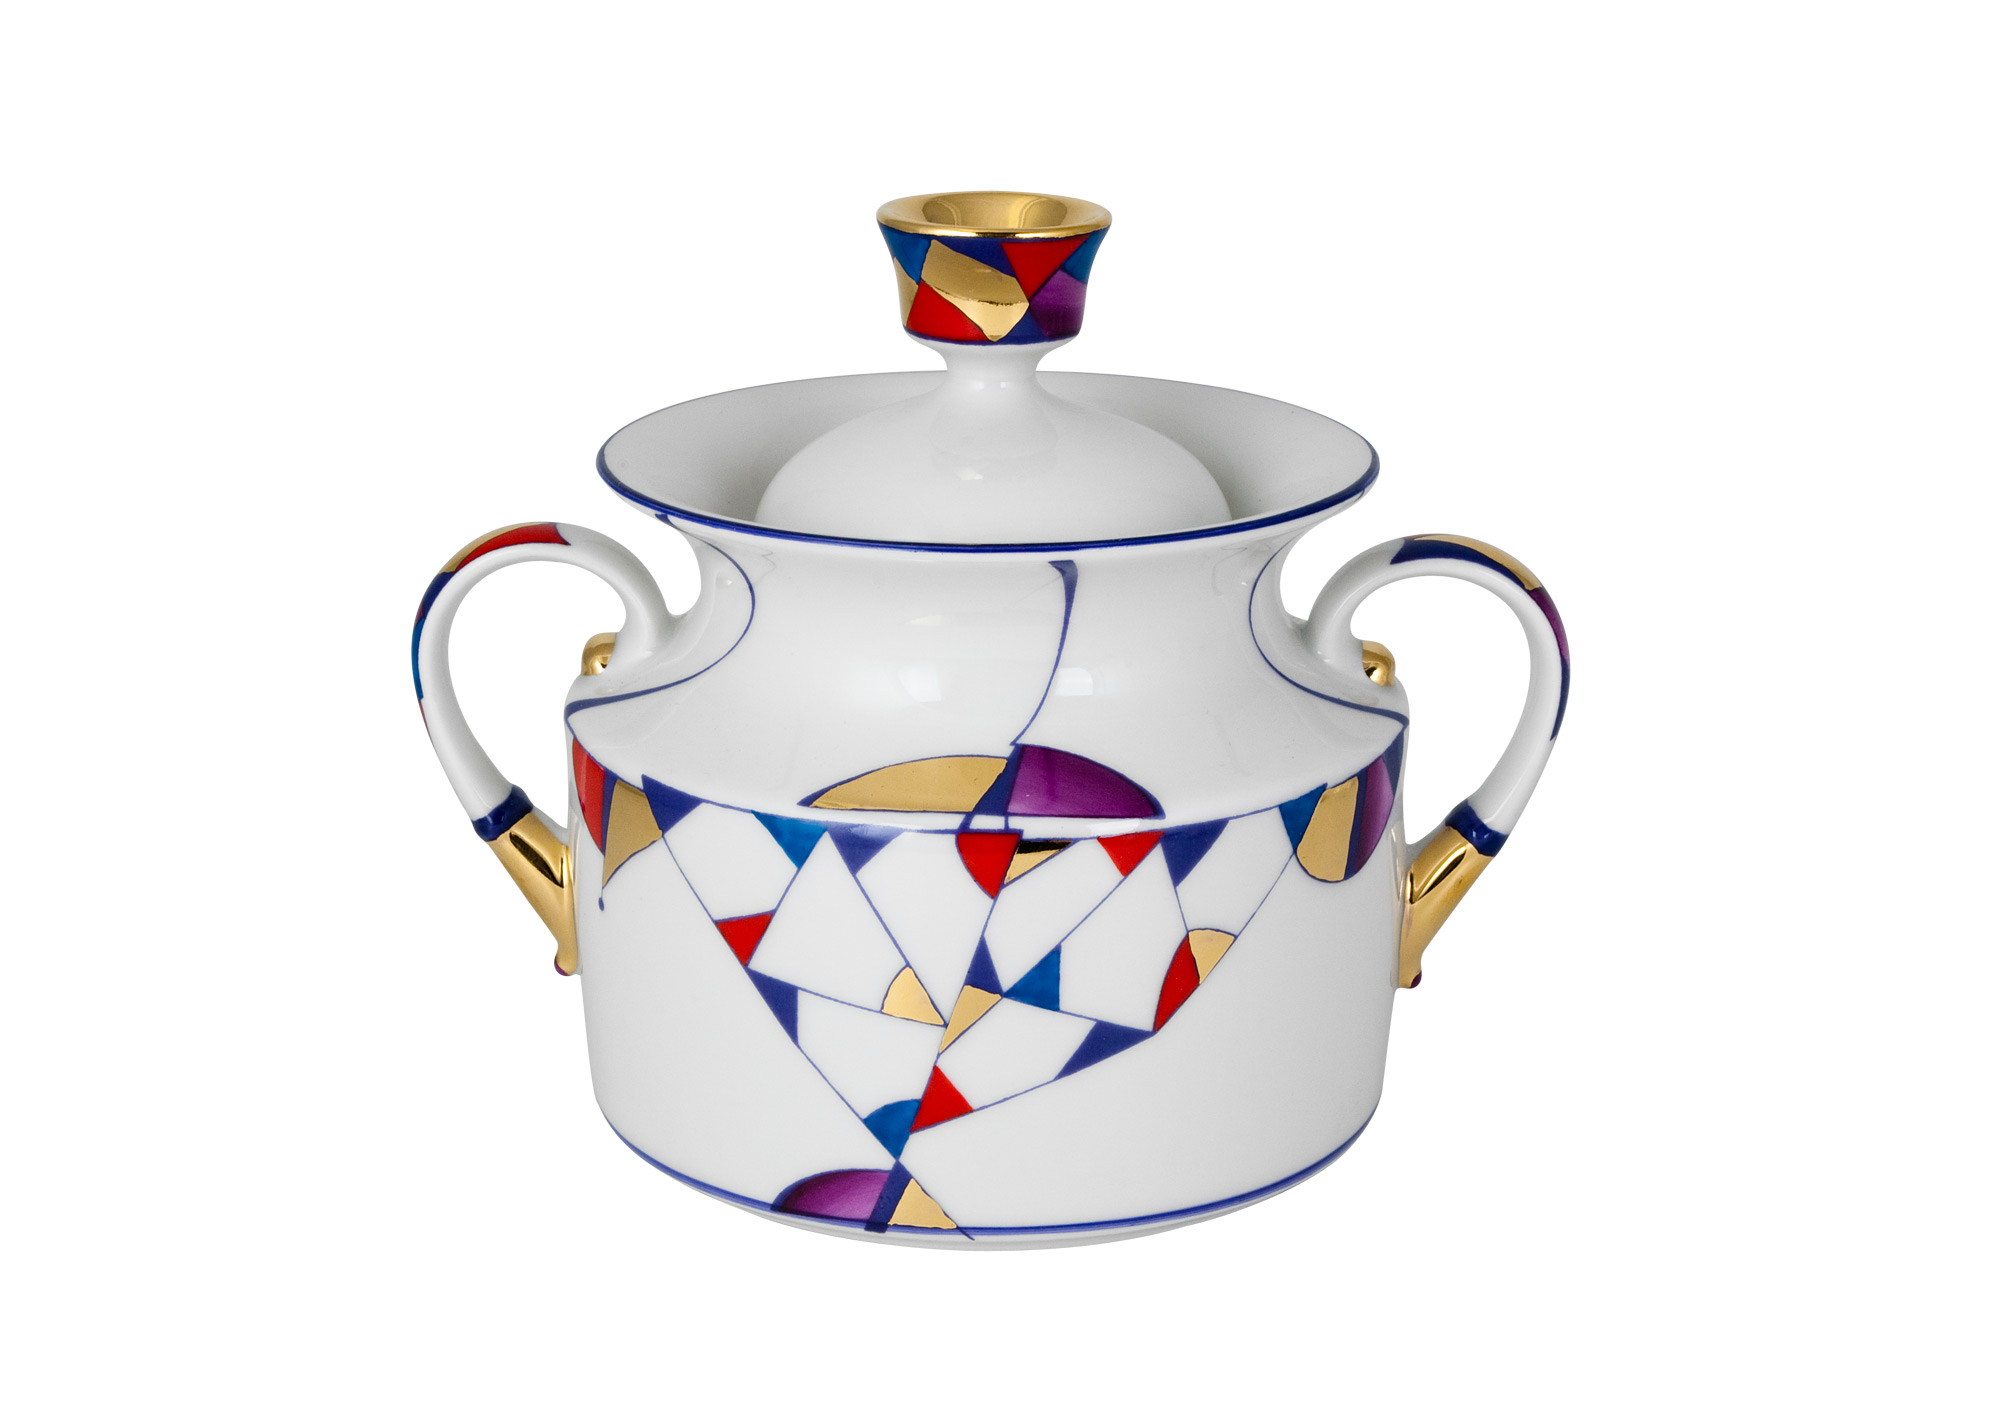 Buy Kaleidoscope Sugar Bowl at GoldenCockerel.com